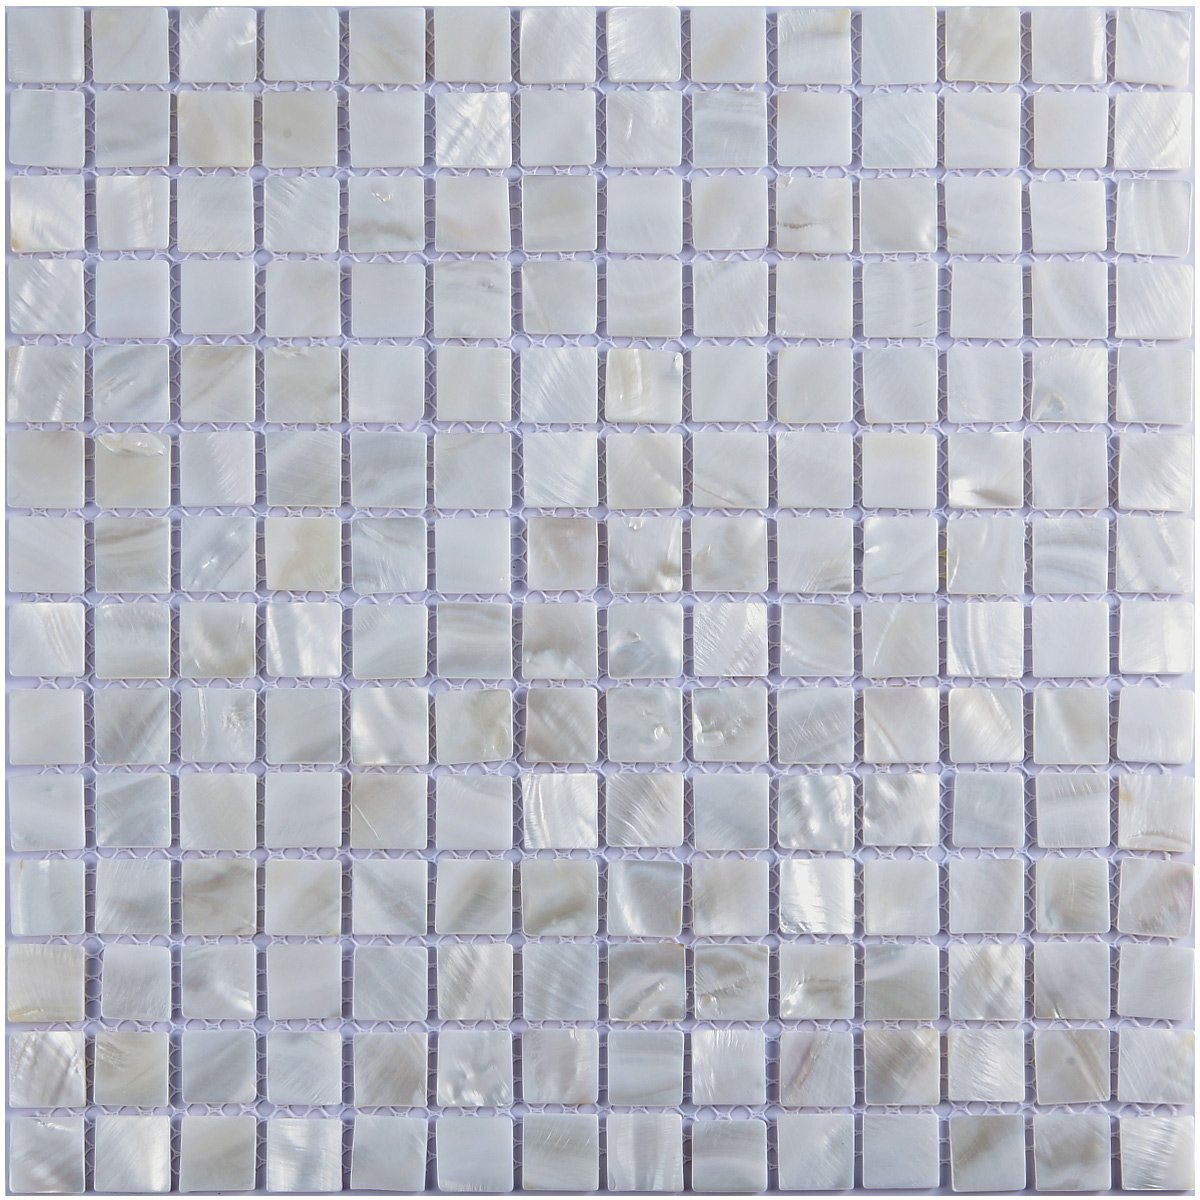 "Art3d Oyster Mother of Pearl Square Shell Mosaic Tile for Kitchen Backsplashes, Bathroom Walls, Spas, Pools 12"" X 12"" Pack of 6"